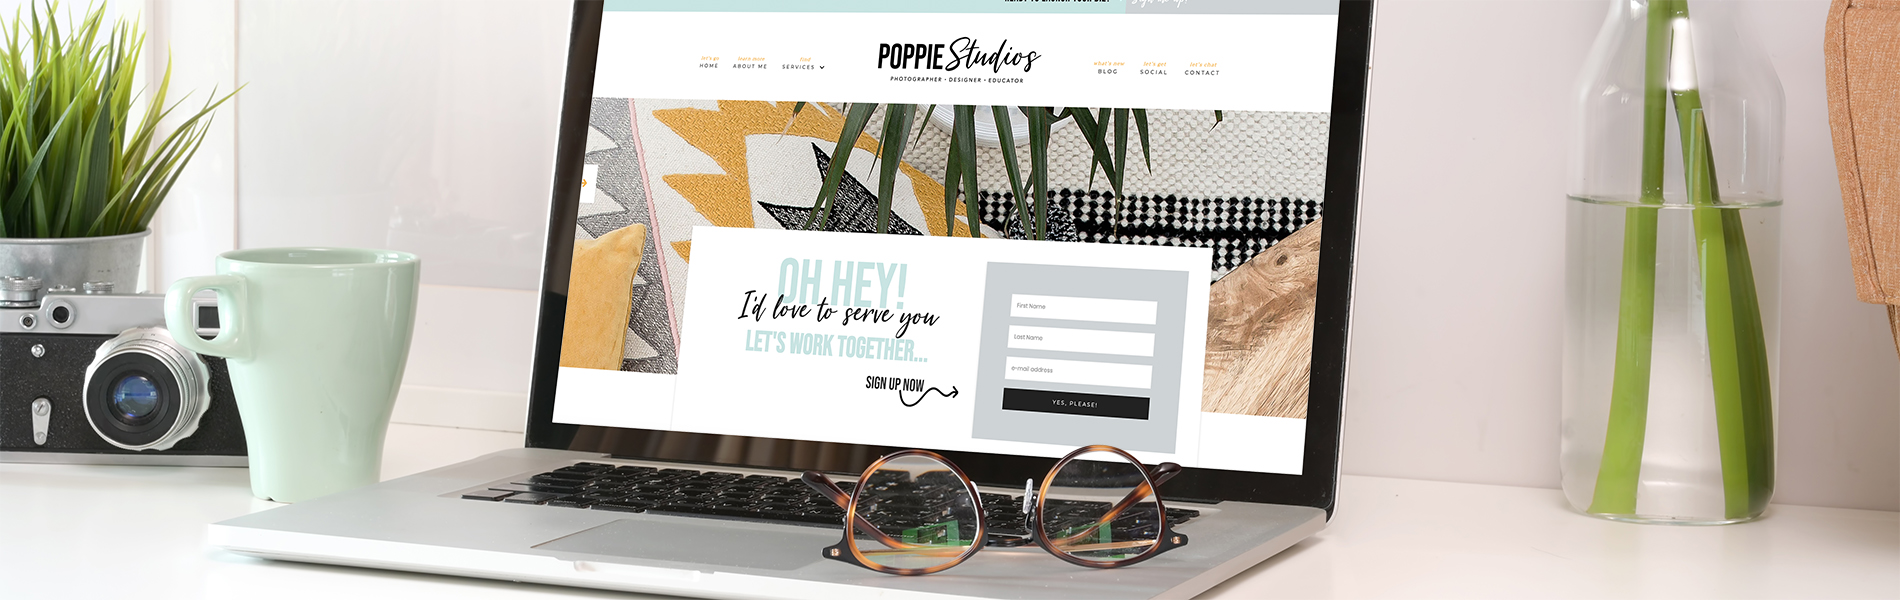 education launch your biz coach poppie studios